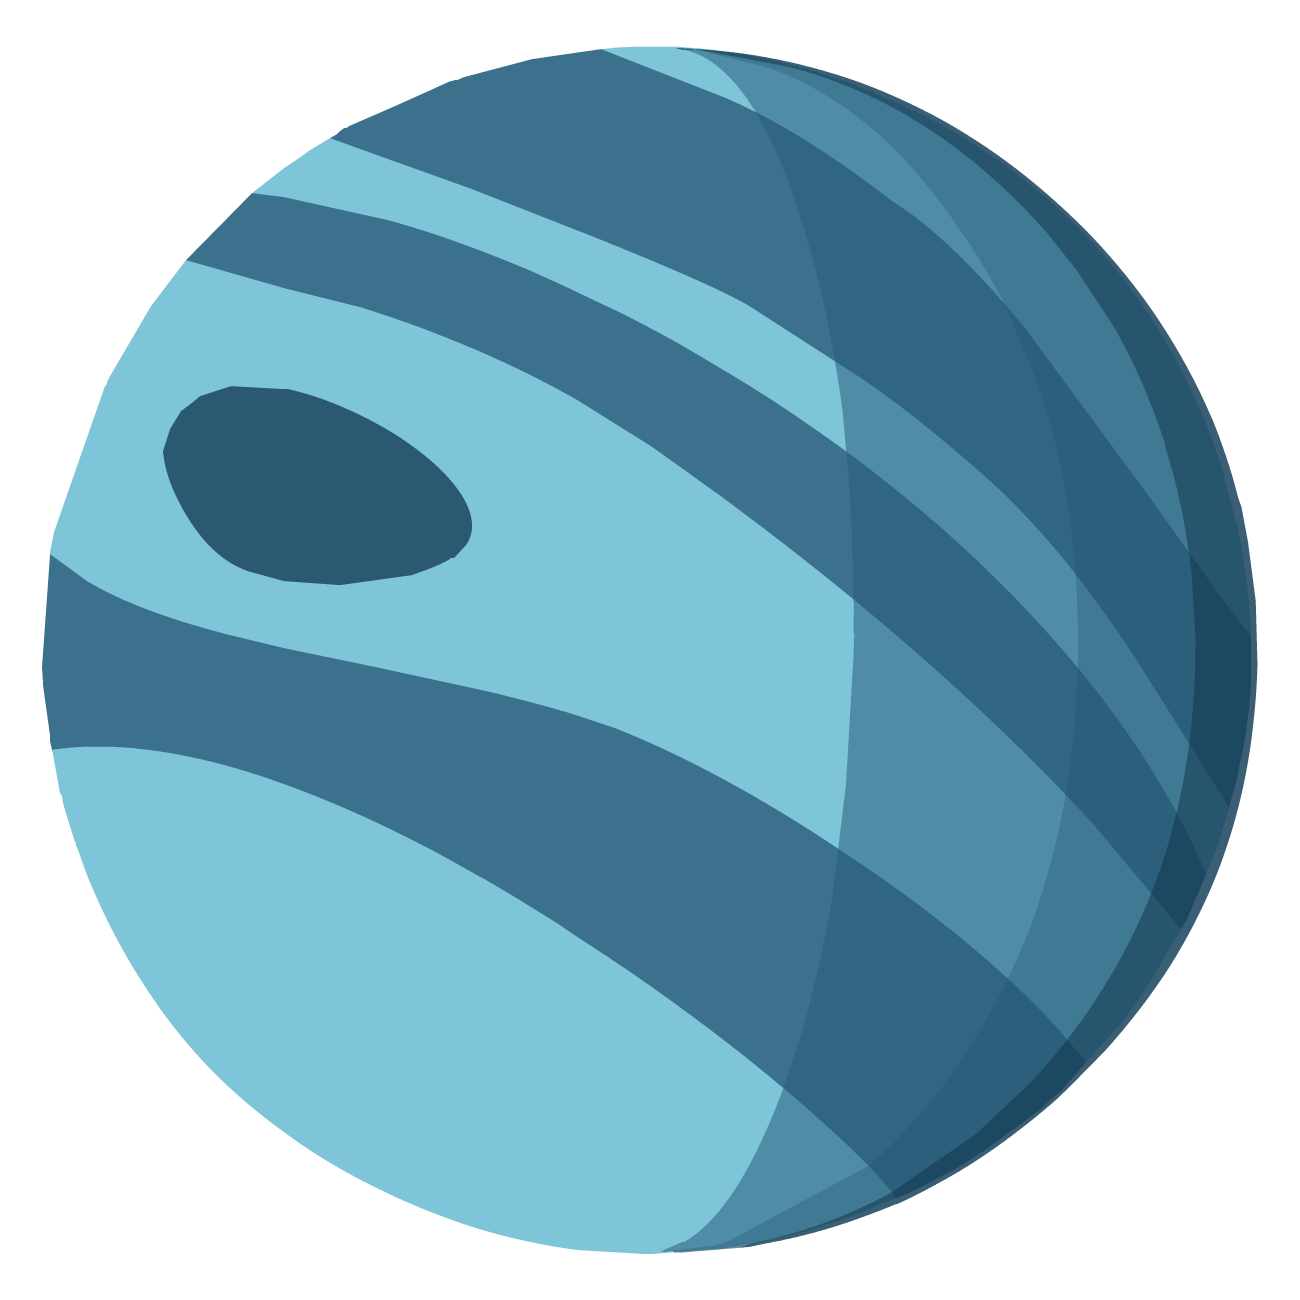 Cartoon planet pictures group. Planeten clipart systemclip